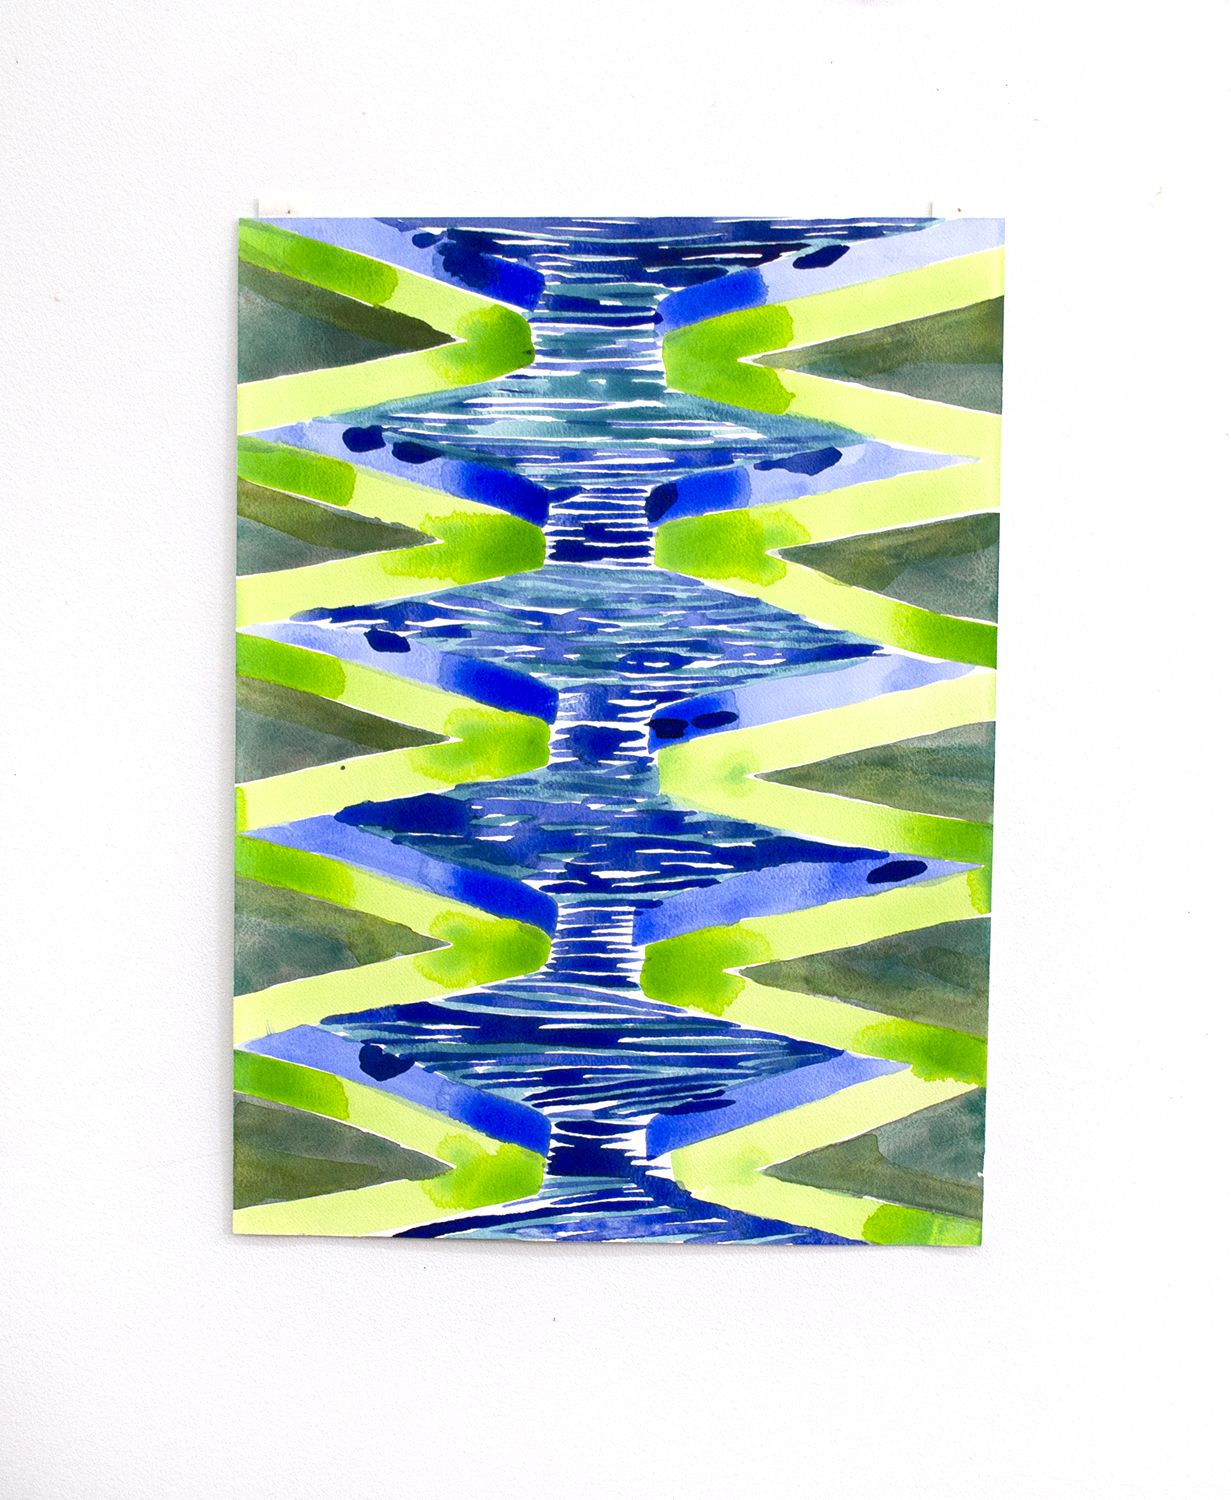 "Zig Zag Water 1, 2016, Charlene Vickers (Anishnabe), Watercolour on paper, 19"" x 14"", $1,000 unframed"